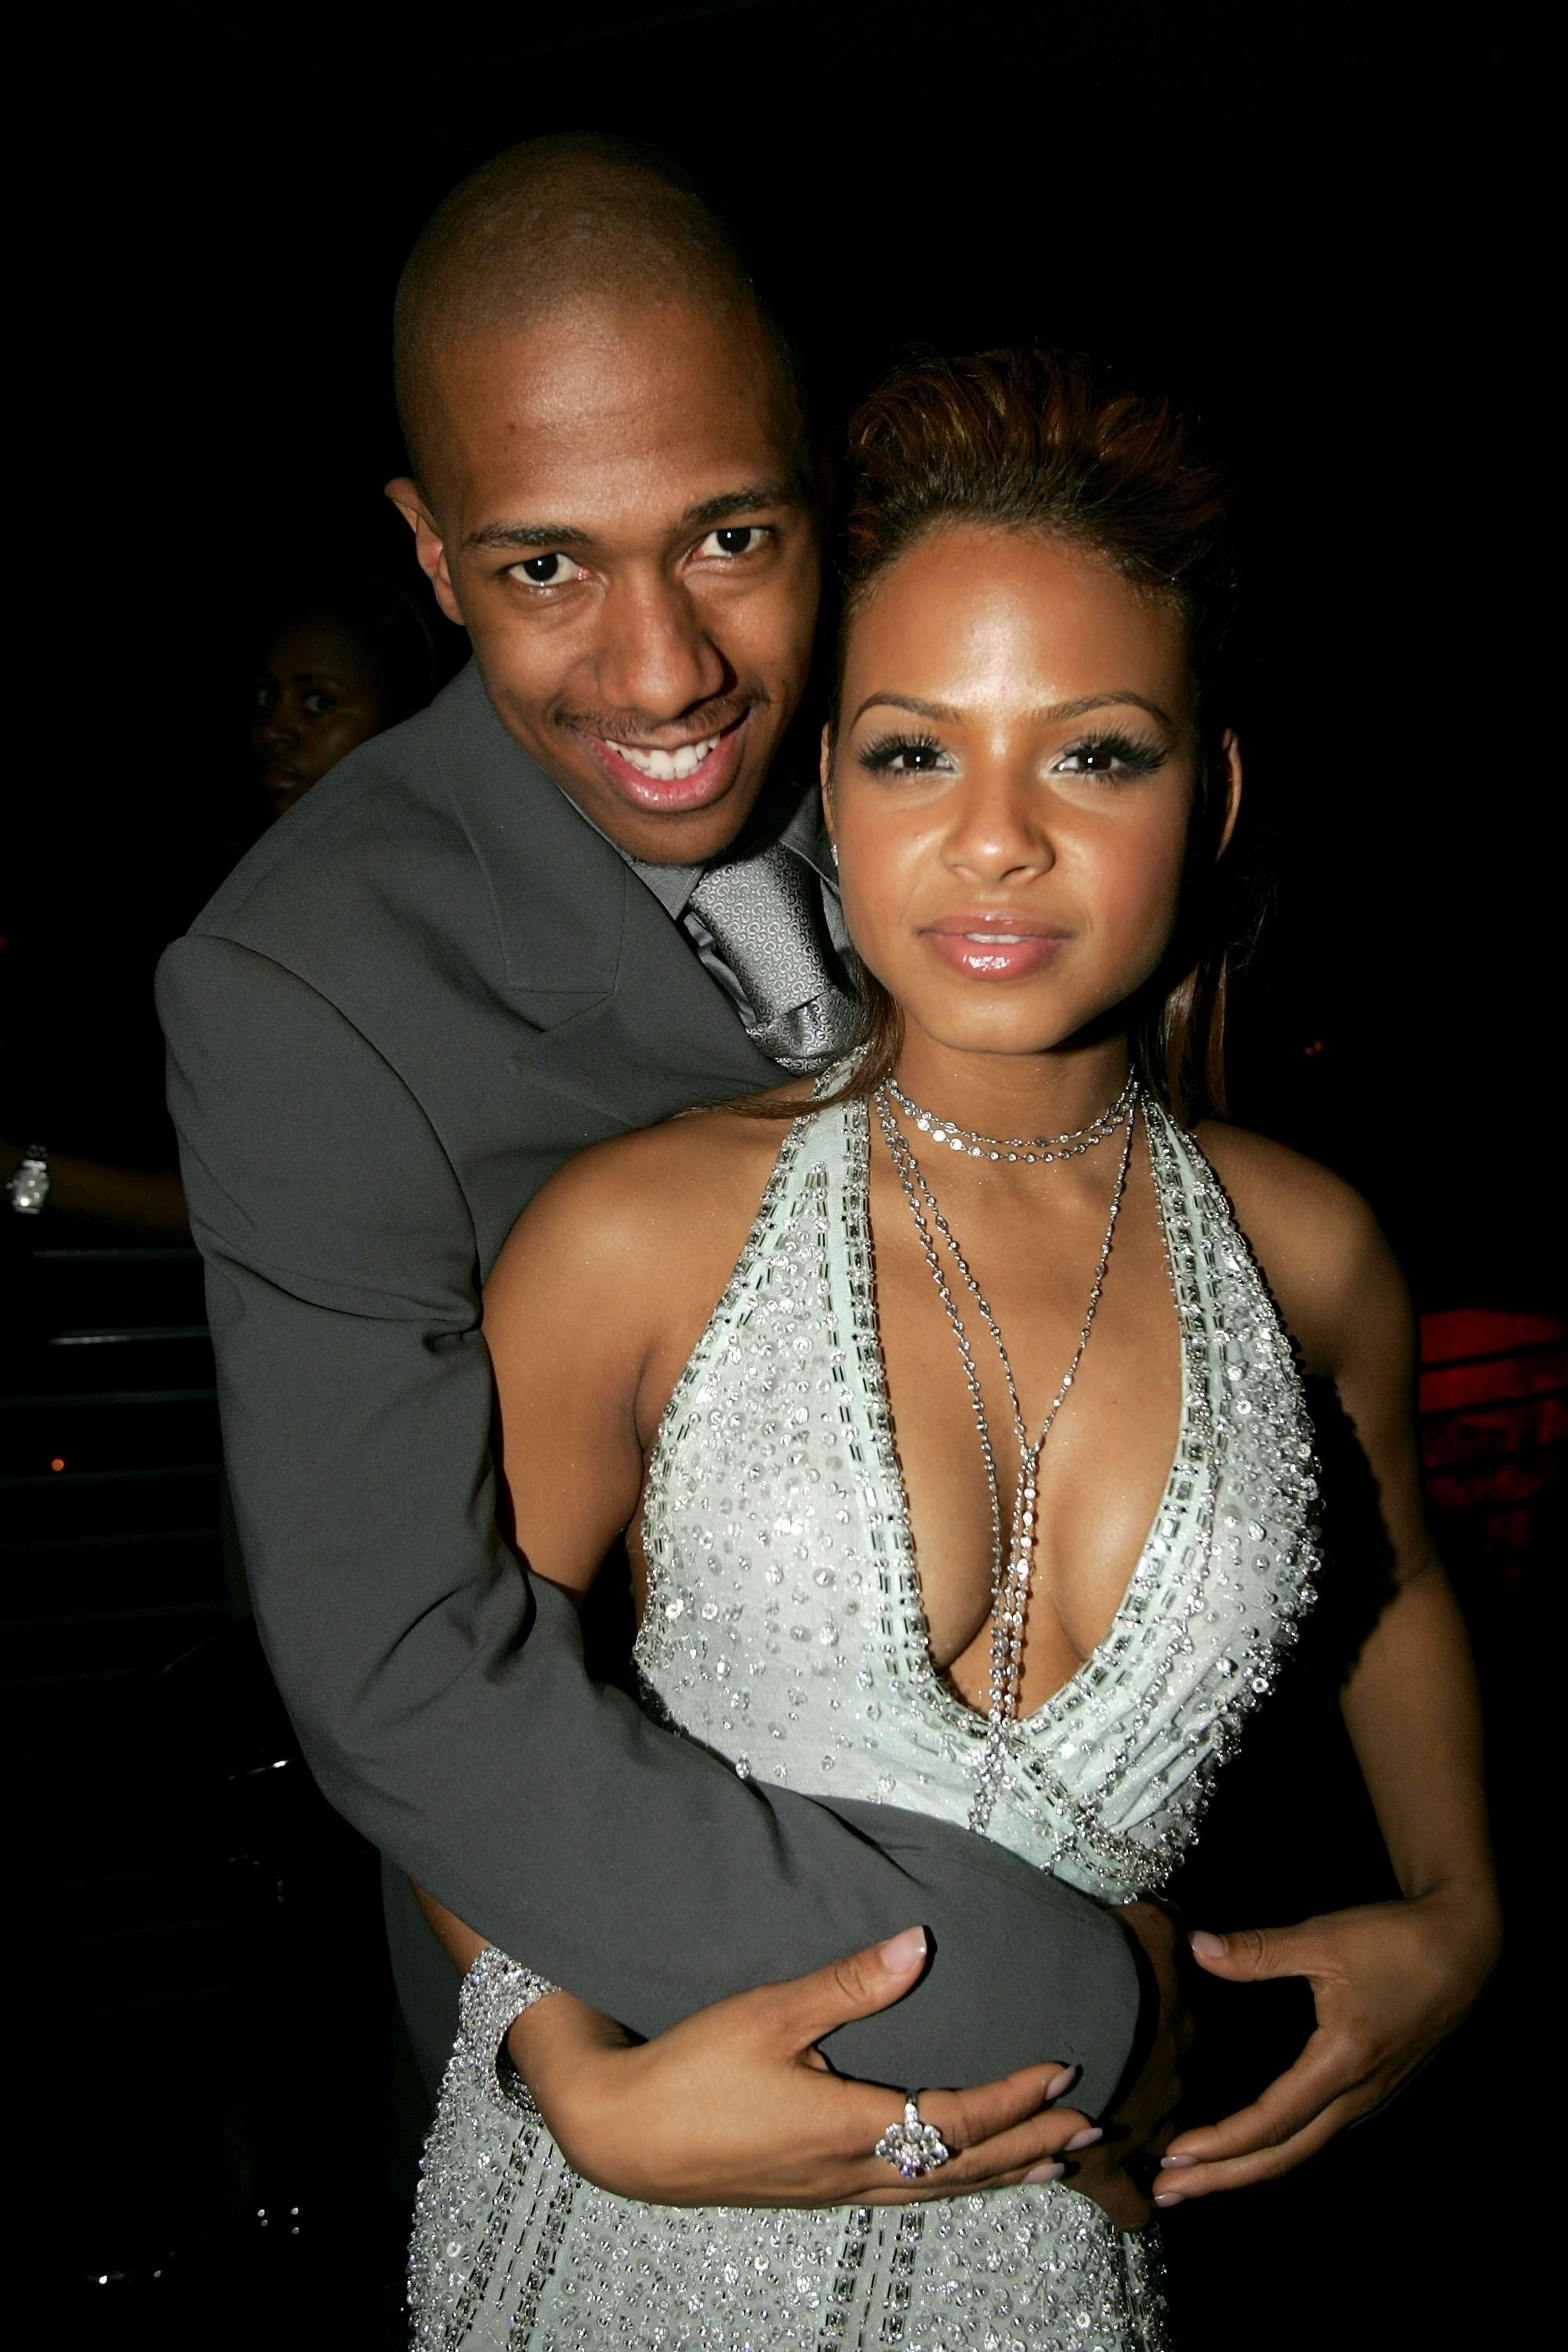 Nick Cannon and Christina Milian at a formal event | Source: Getty Images/GlobalImagesUkraine